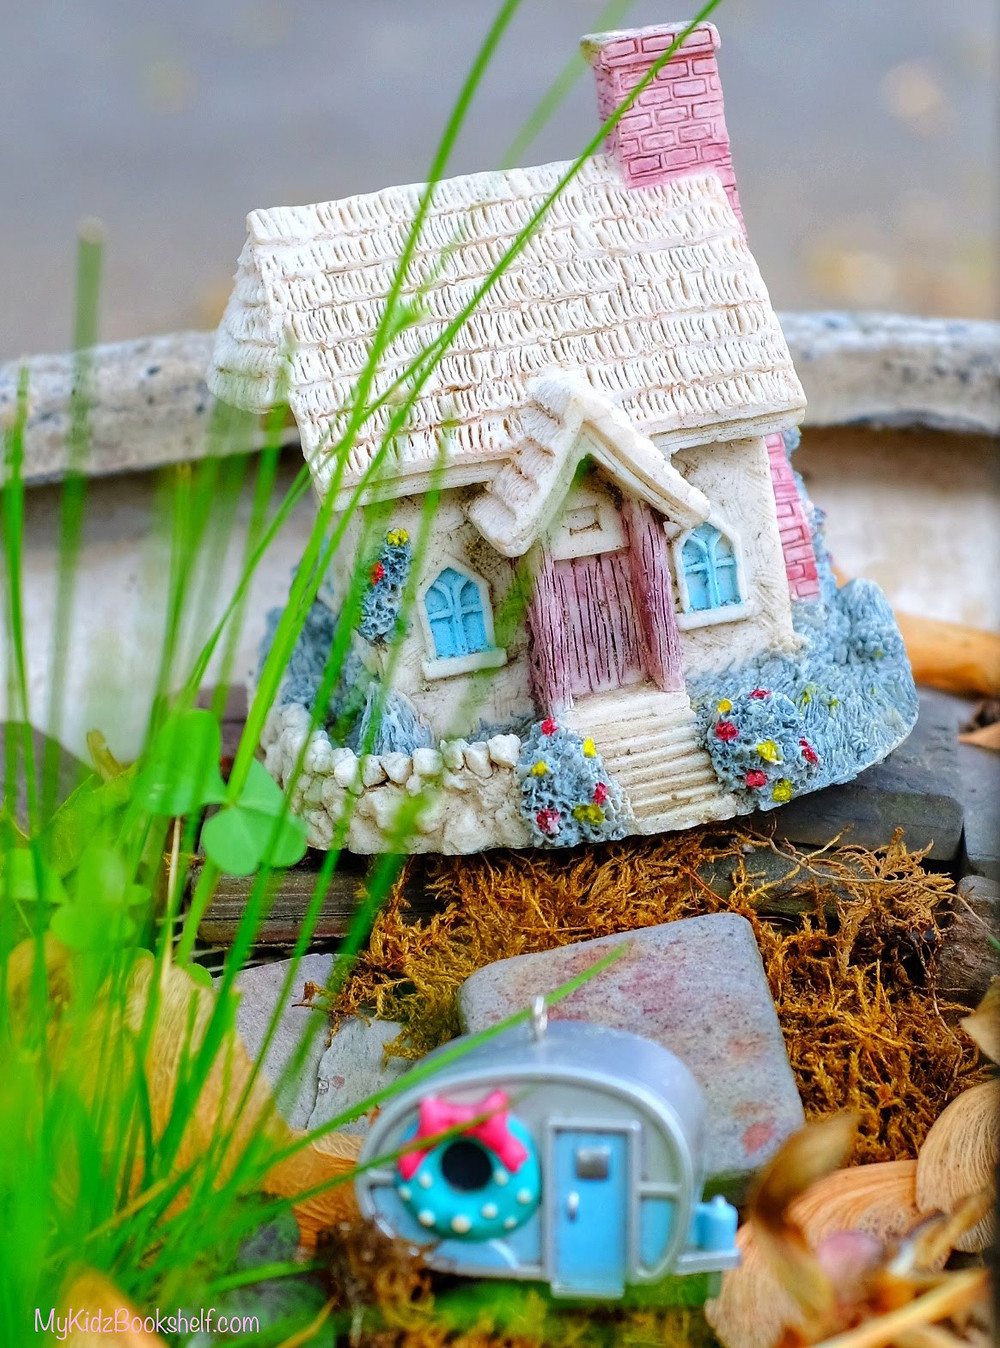 Fairy garden cottage with little old fashioned camper in moss, rocks, grass